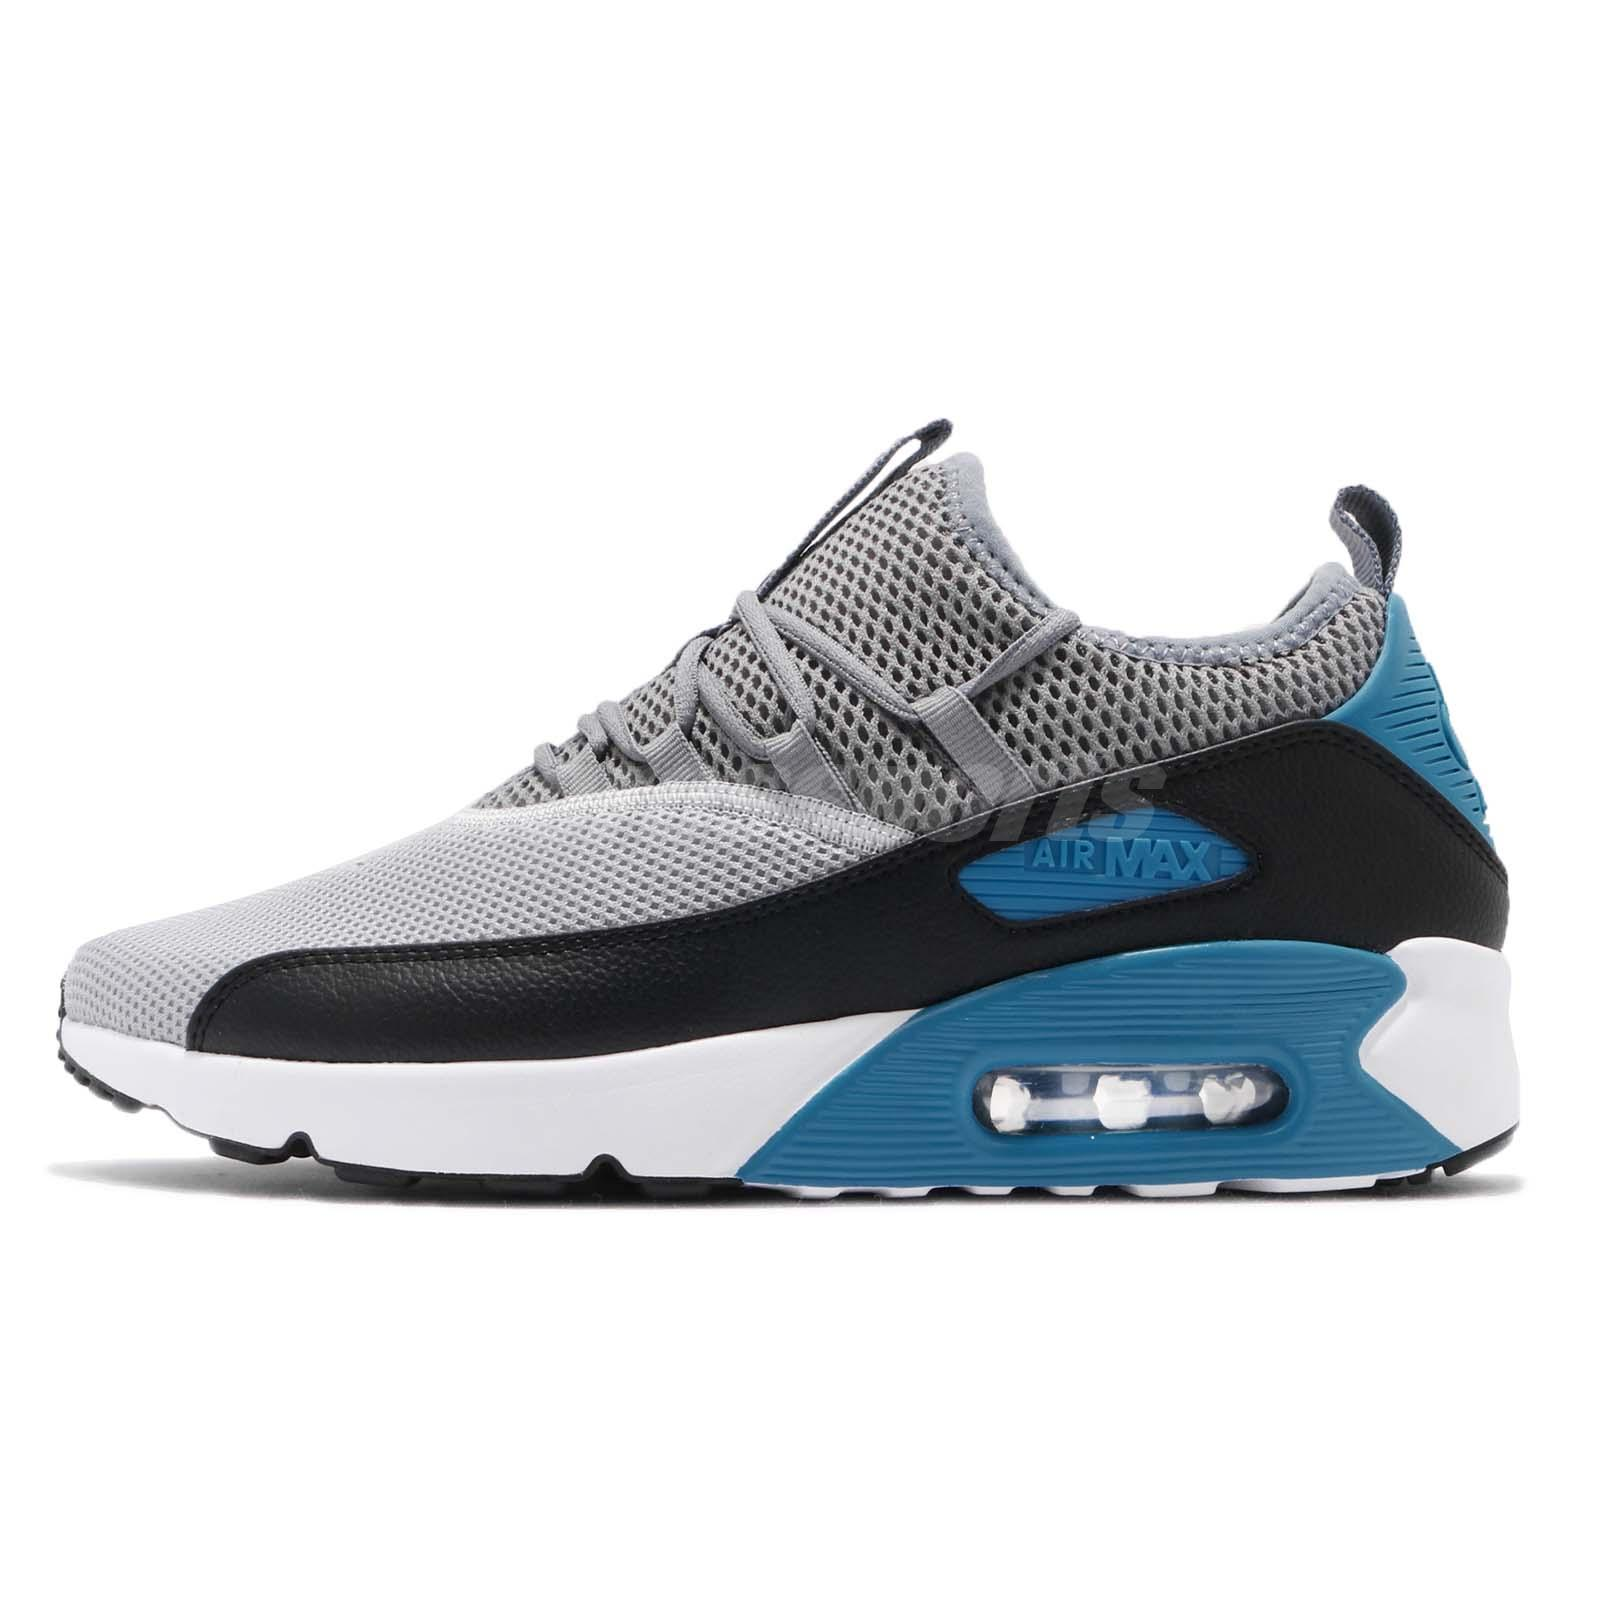 purchase cheap a3d59 7fac0 Nike Air Max 90 EZ Ease Wolf Grey Black Men Running Shoes Sneakers  AO1745-004